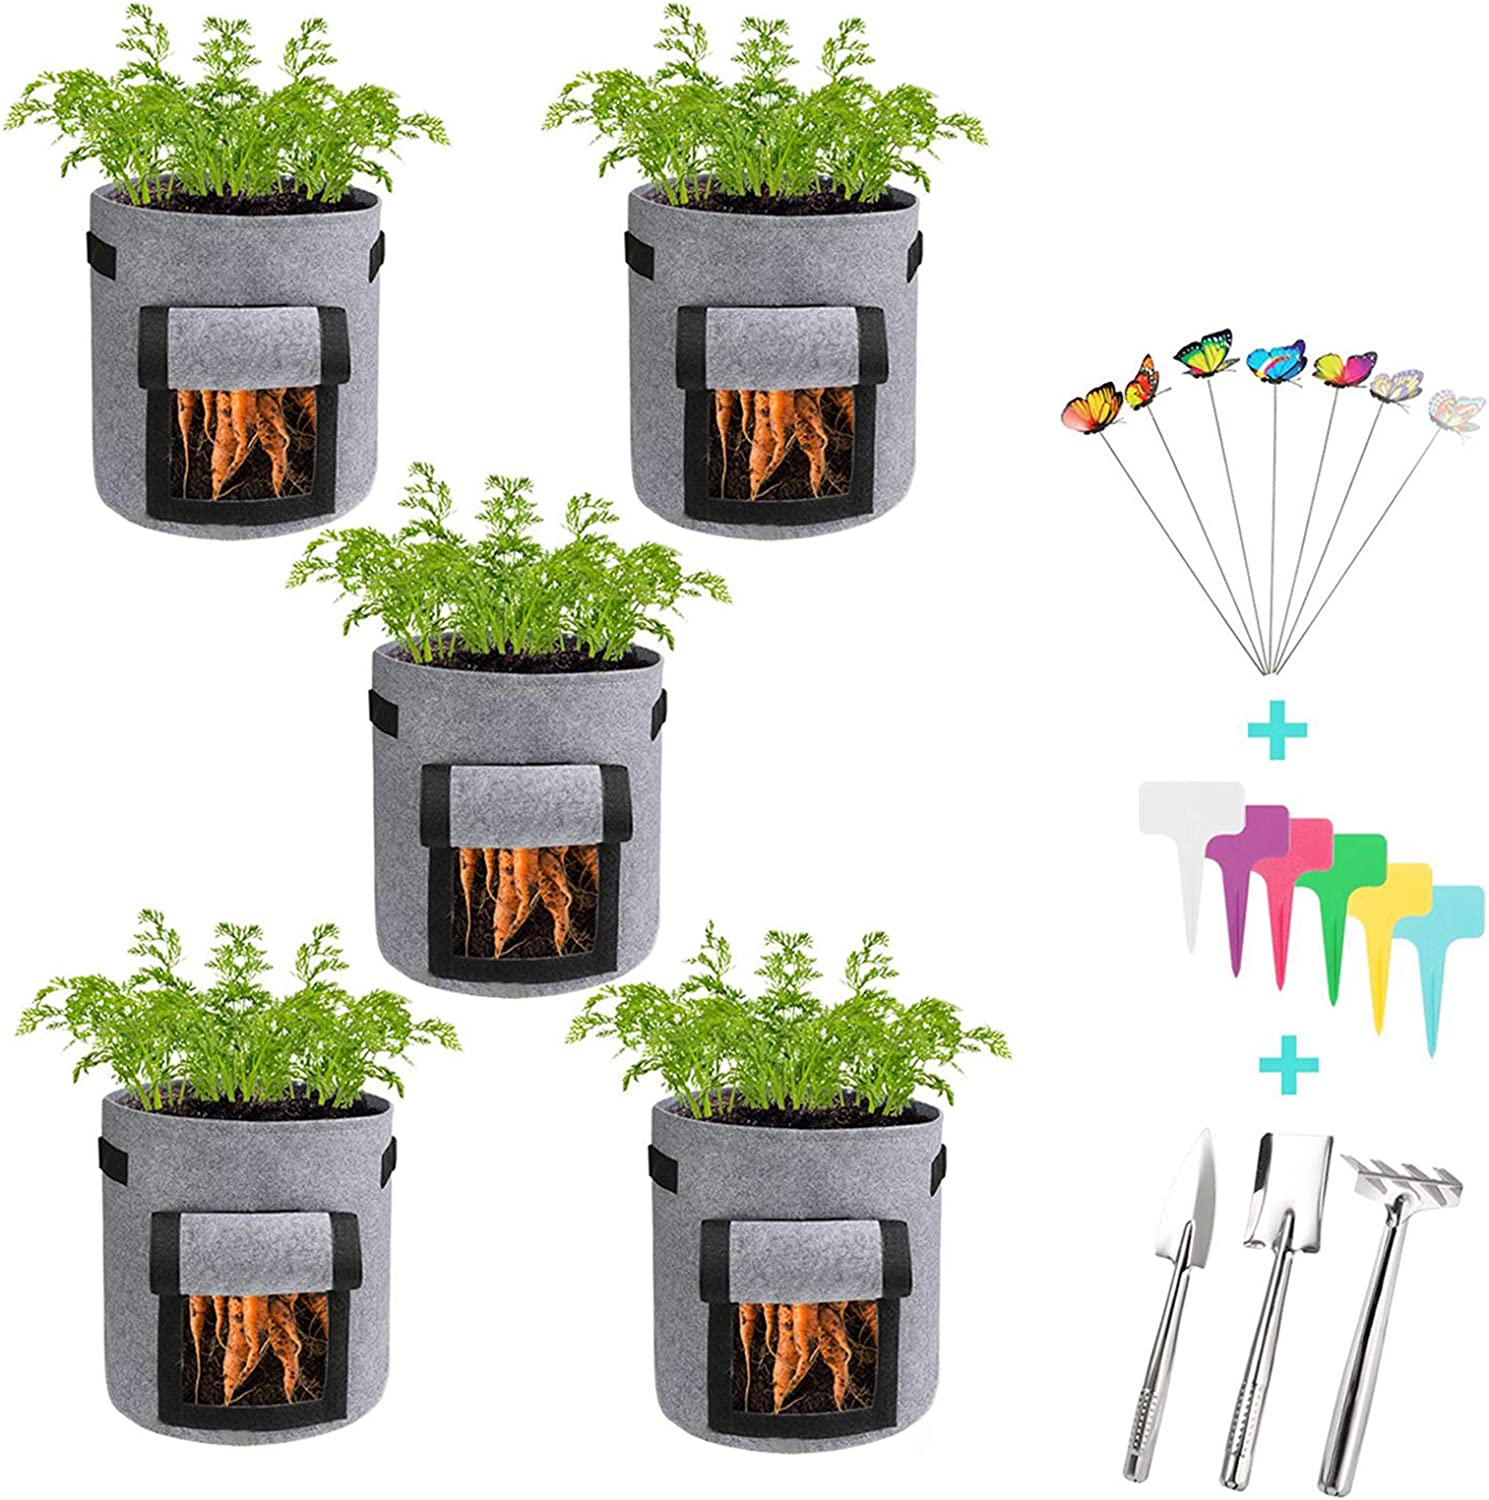 Gallons Potato Planting Bags Planter Growing Garden Flower Vegetable Container